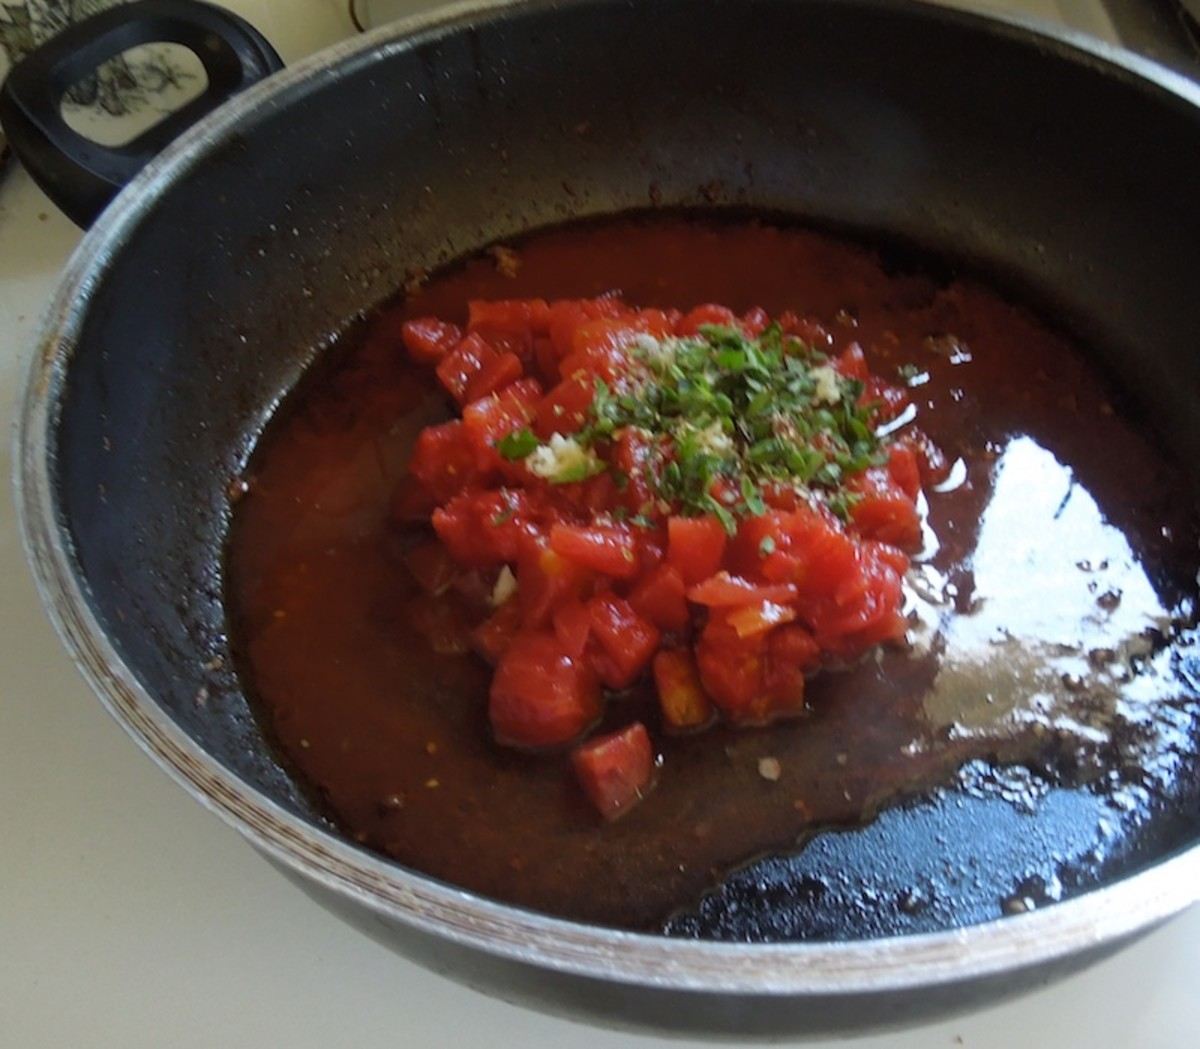 Put canned tomatoes and herbs in skillet with pan juices that remain.